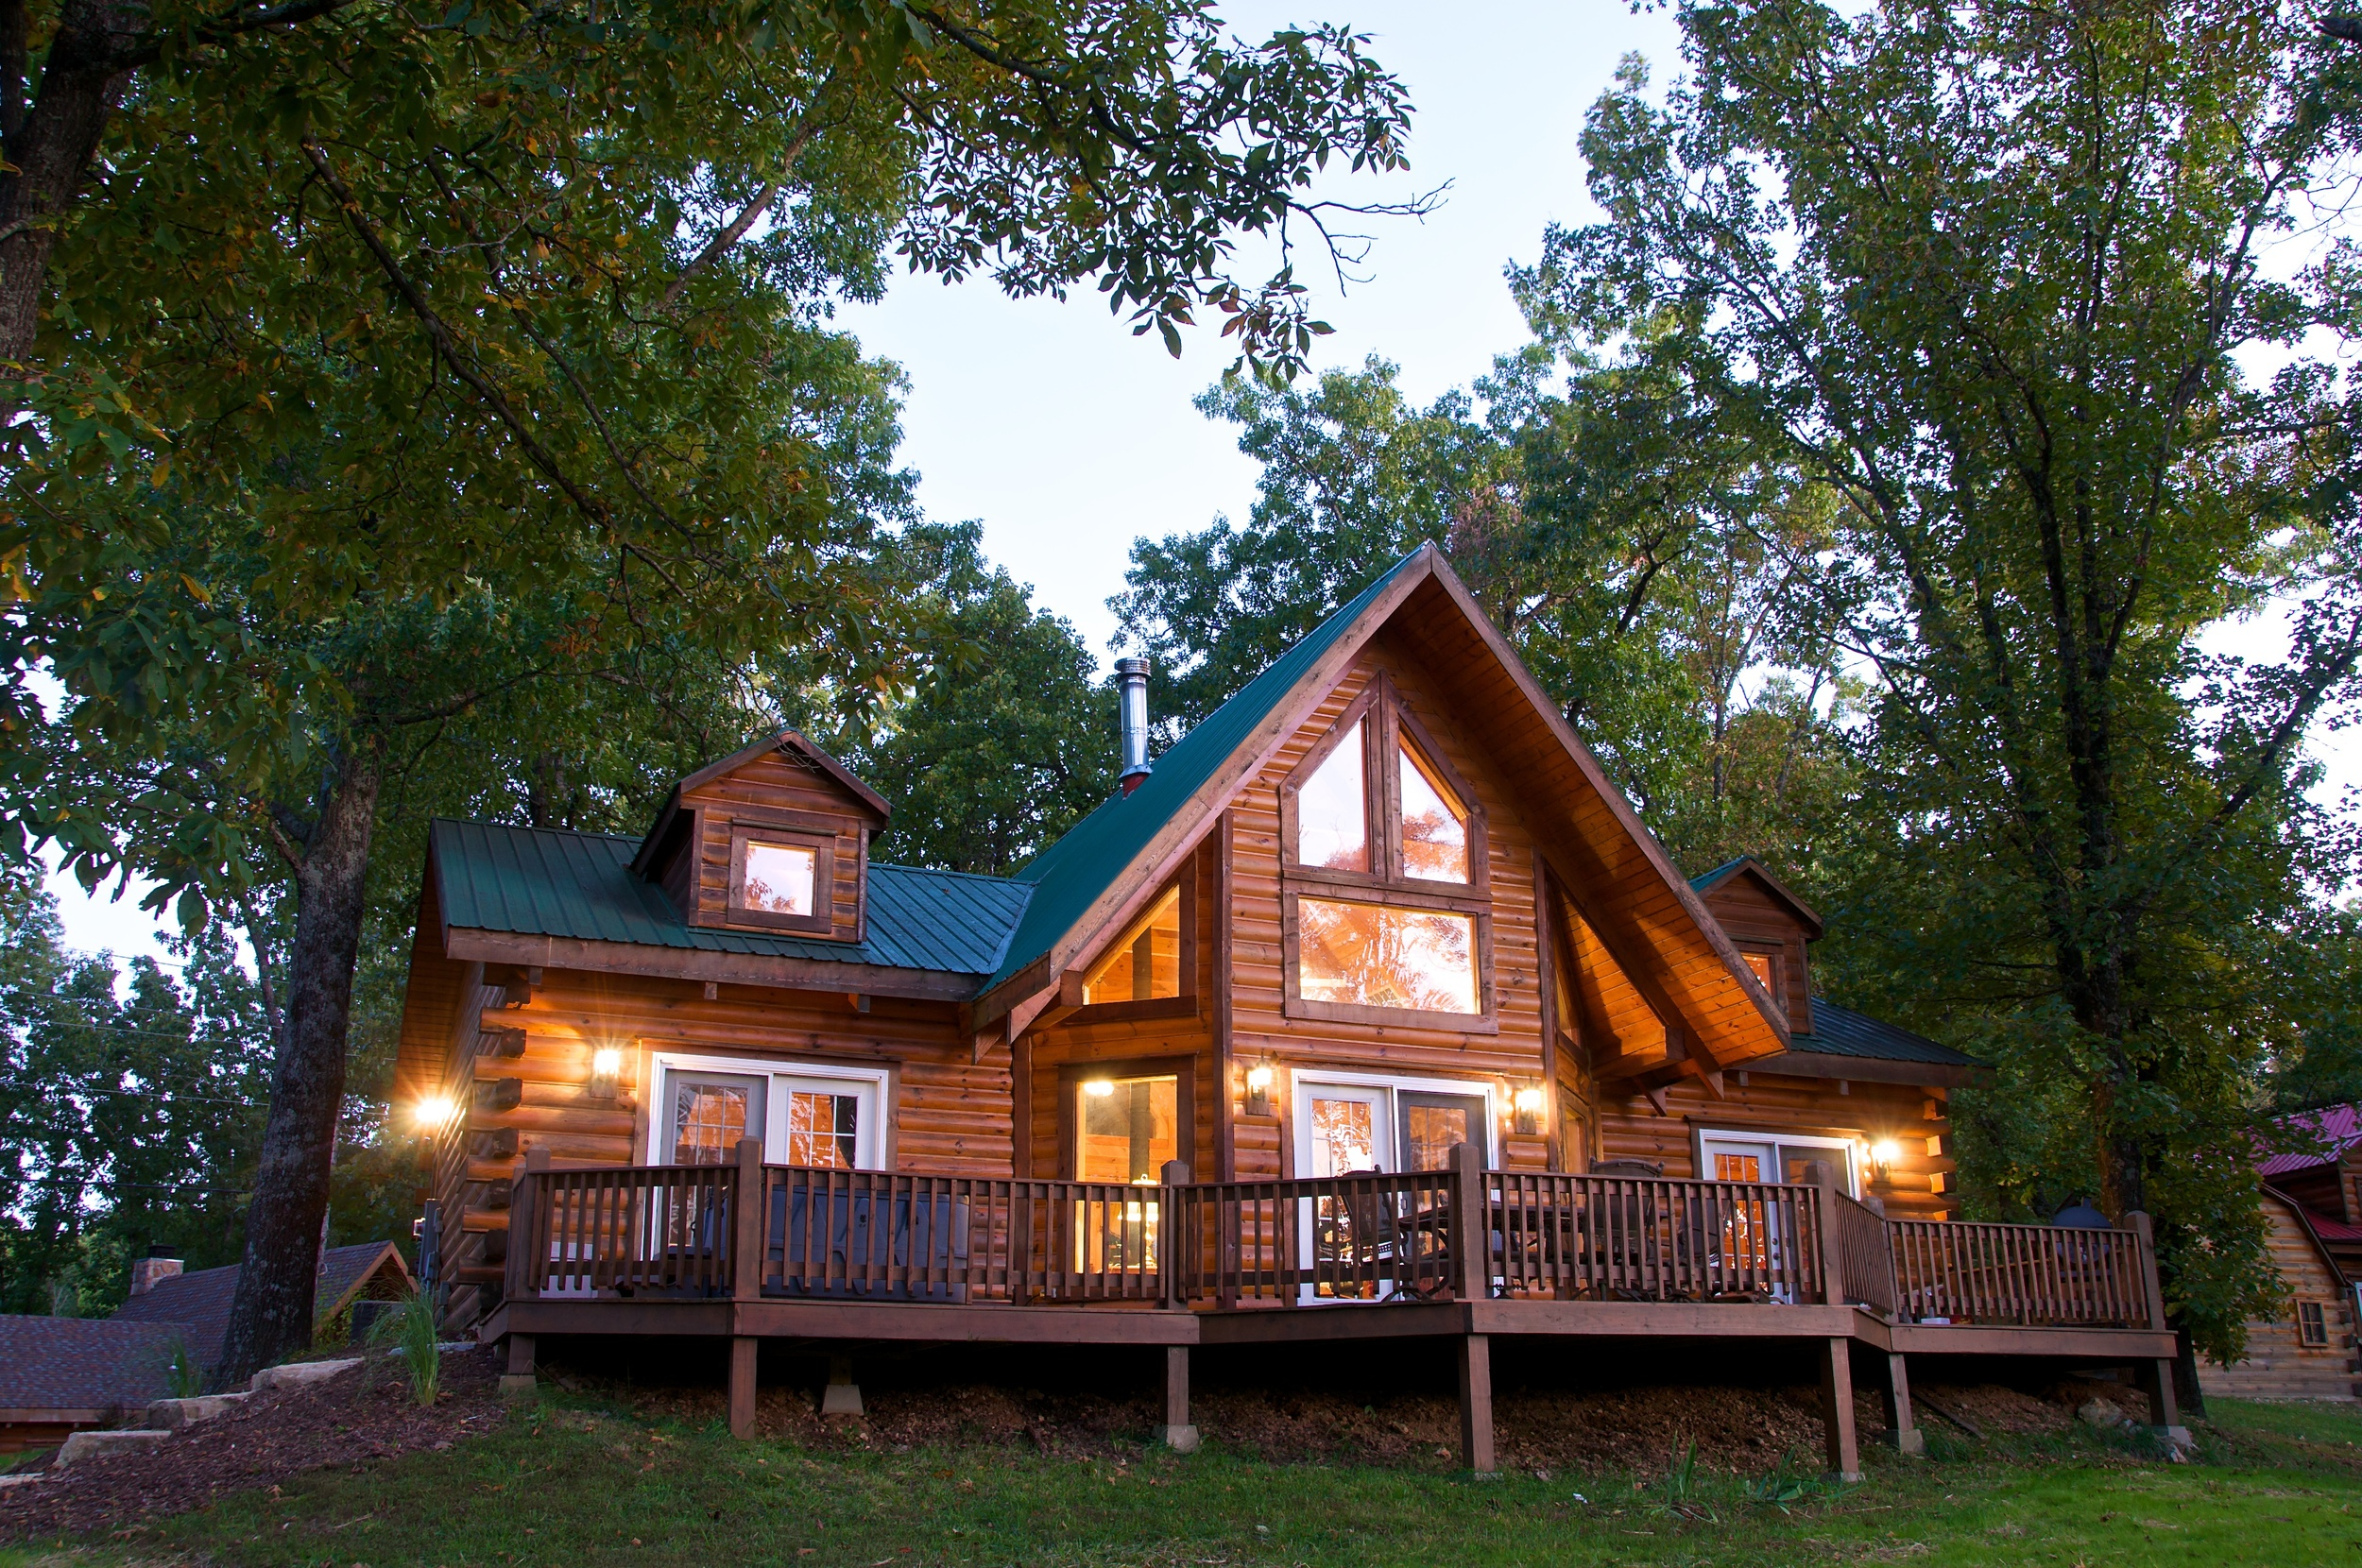 beautiful branson log contemporary cabins rustic among missouri trees place beauty while haven natural mountains meeting in bcl luxury nestle of holder a annual the ozark and